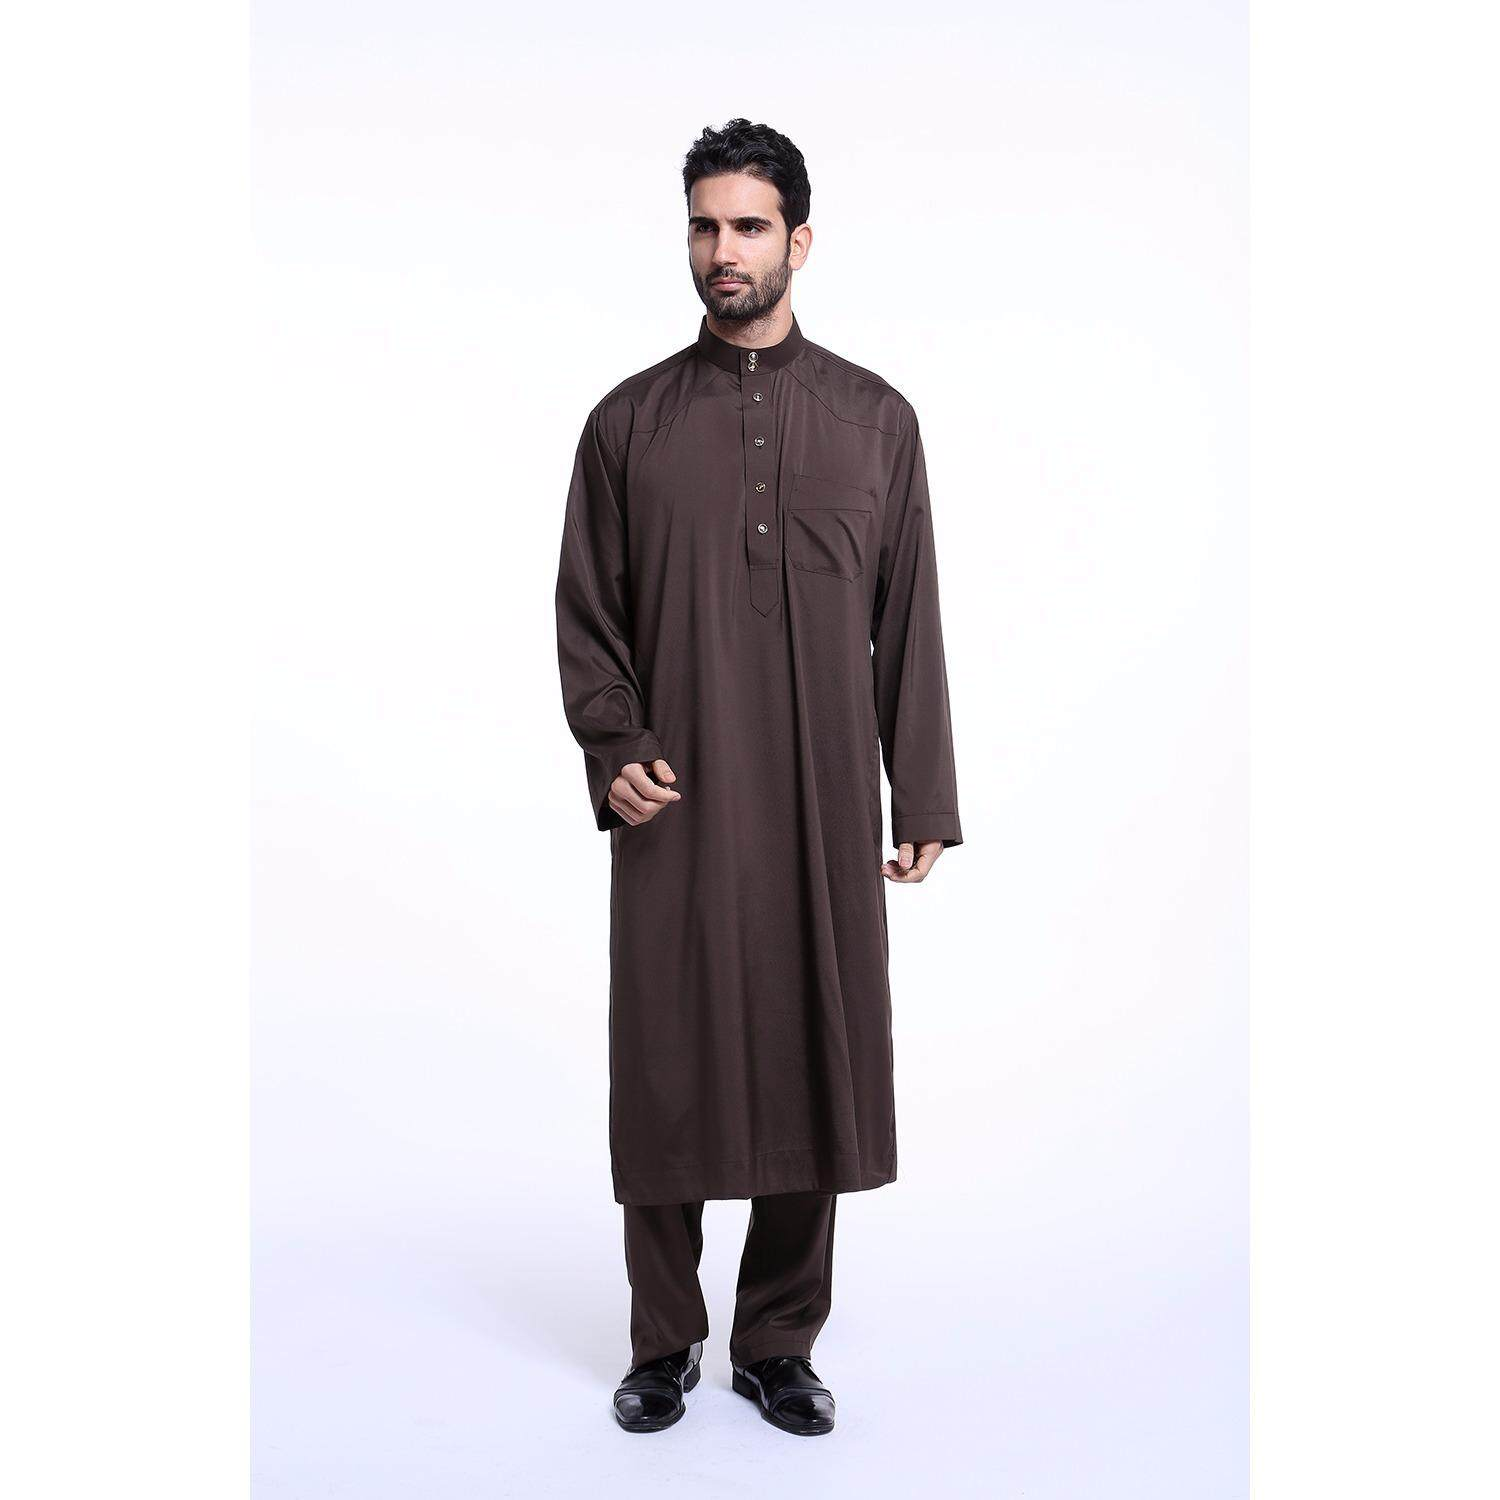 New Men Jubahs with Tops and Bottoms for Muslim Friends  sc 1 st  Lazada & Popular Muslim Wear for Guys for the Best Prices in Malaysia